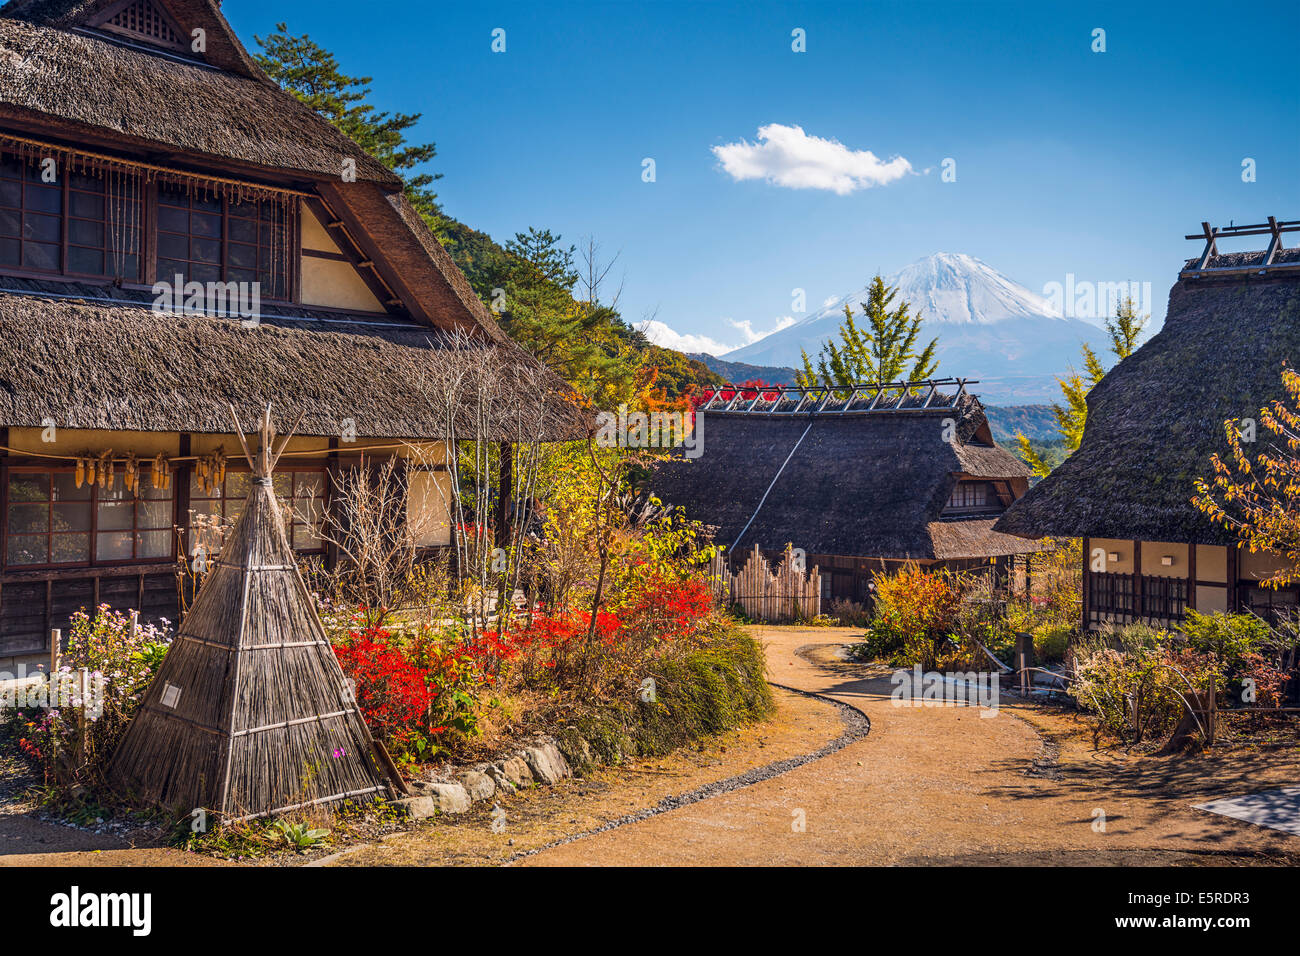 Mt. Fuji, Japan viewed from Iyashi-no-sato historic village. - Stock Image